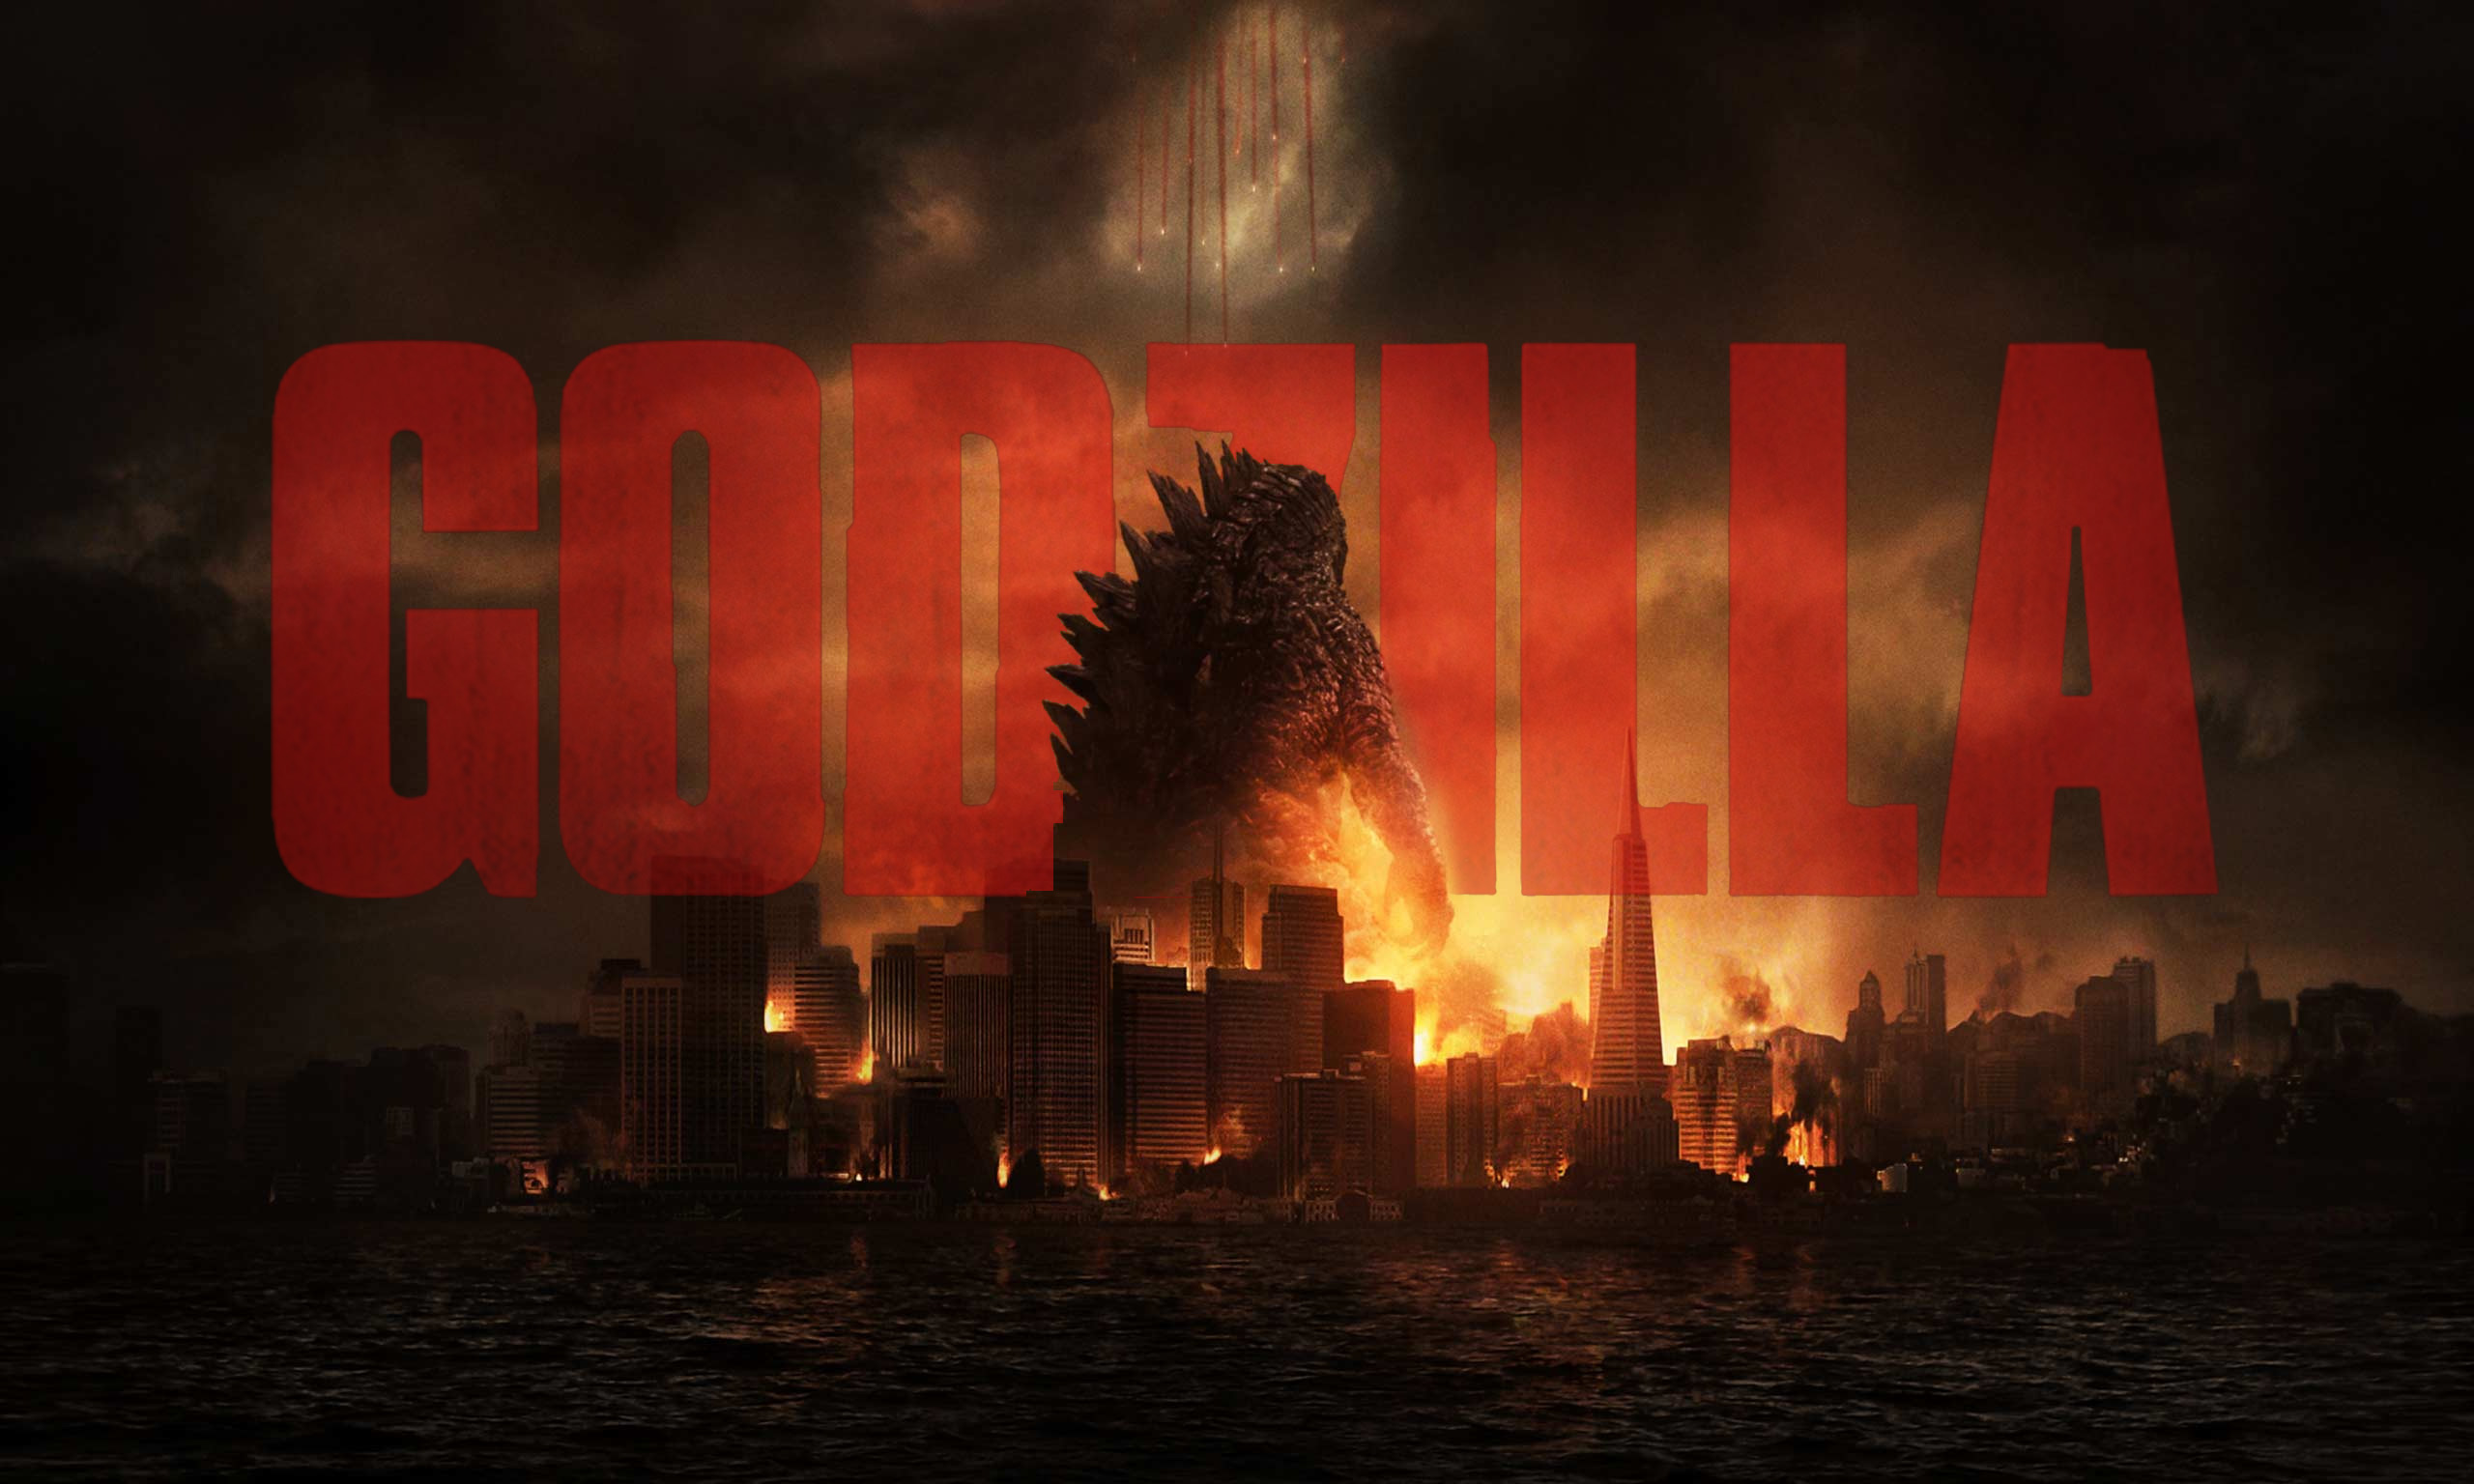 GOdzilla 2014 wallpaper   Geek Prime 2560x1536